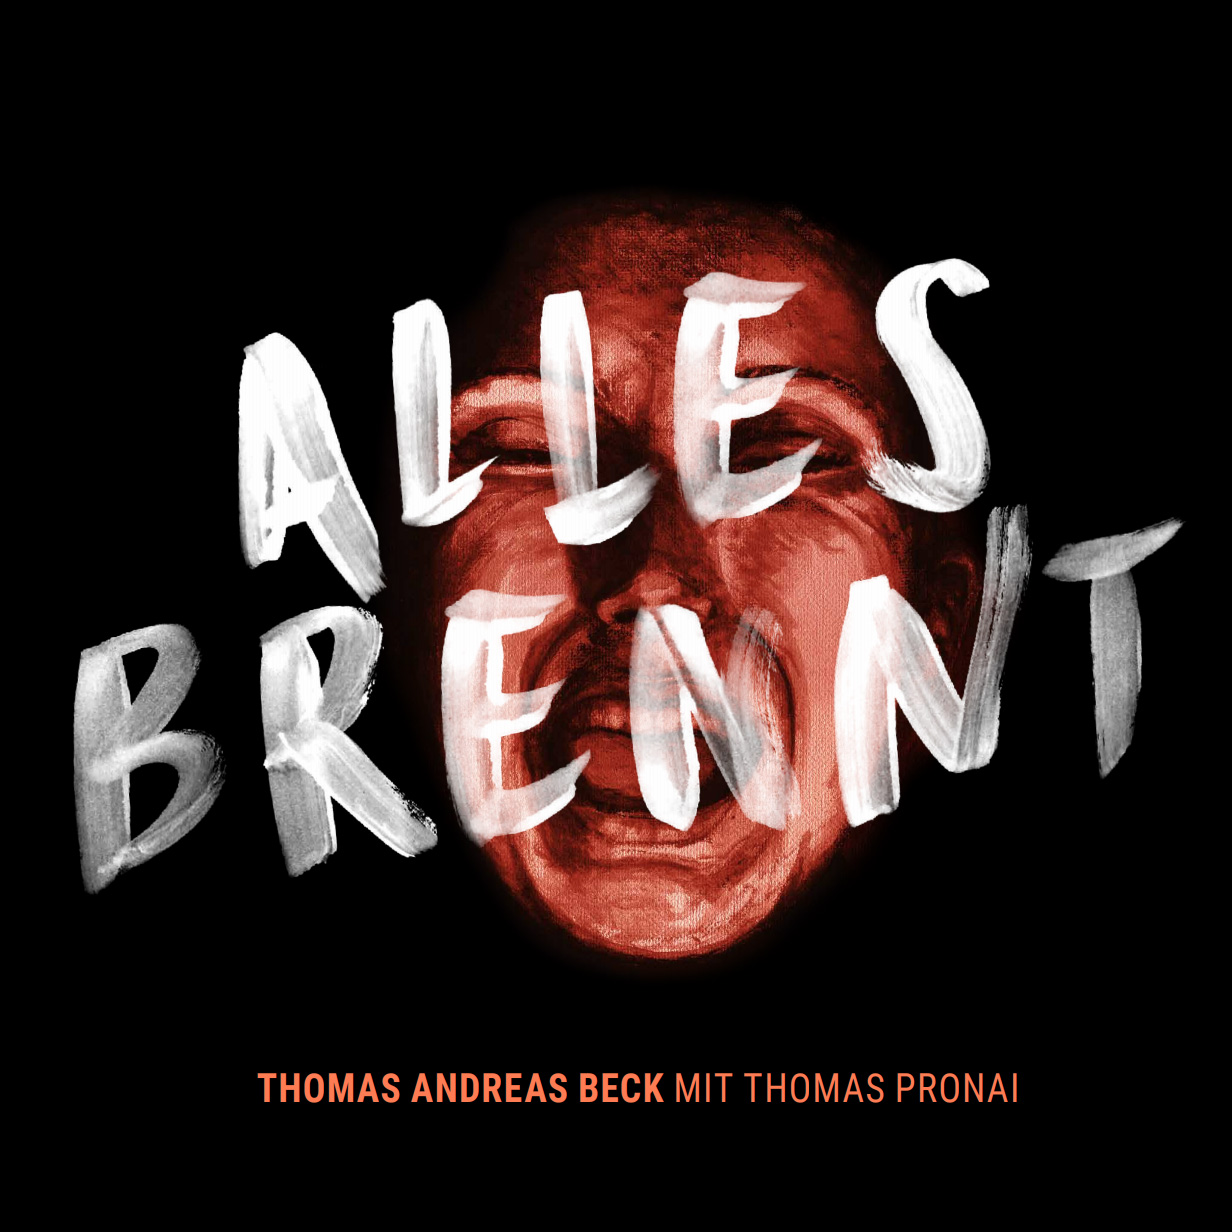 Thomas Andreas Beck - Alles brennt